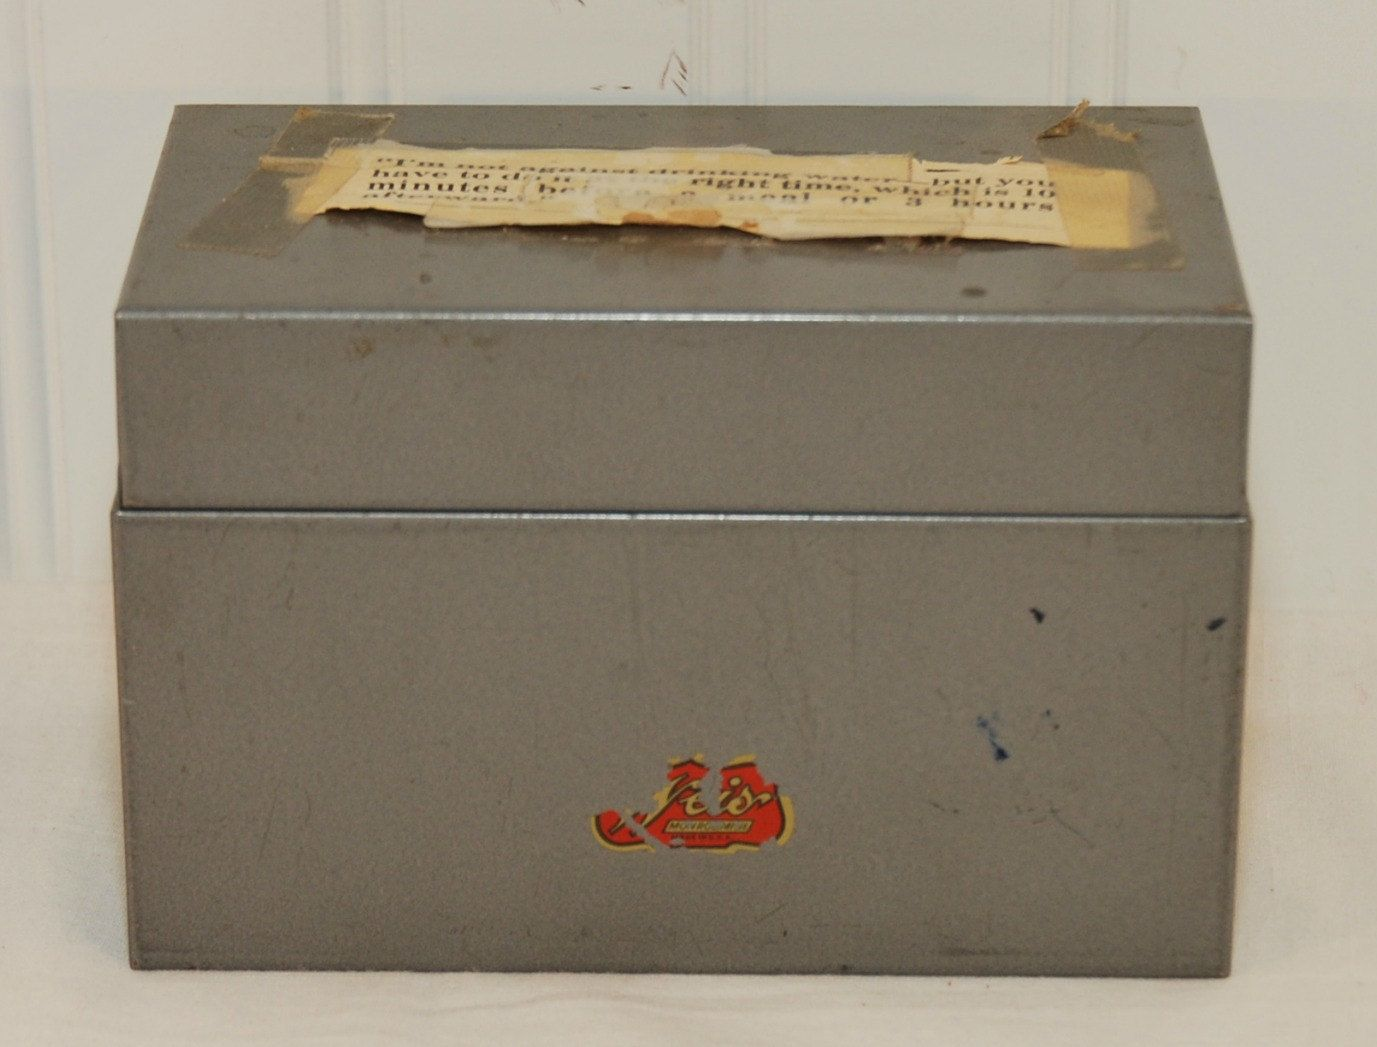 Mid Century Weis Gray Metal File Box C 1950s 3 Inch By 5 Cards Holistic Recipe Vintage Household Tip Art Project TooHipChicks On Etsy